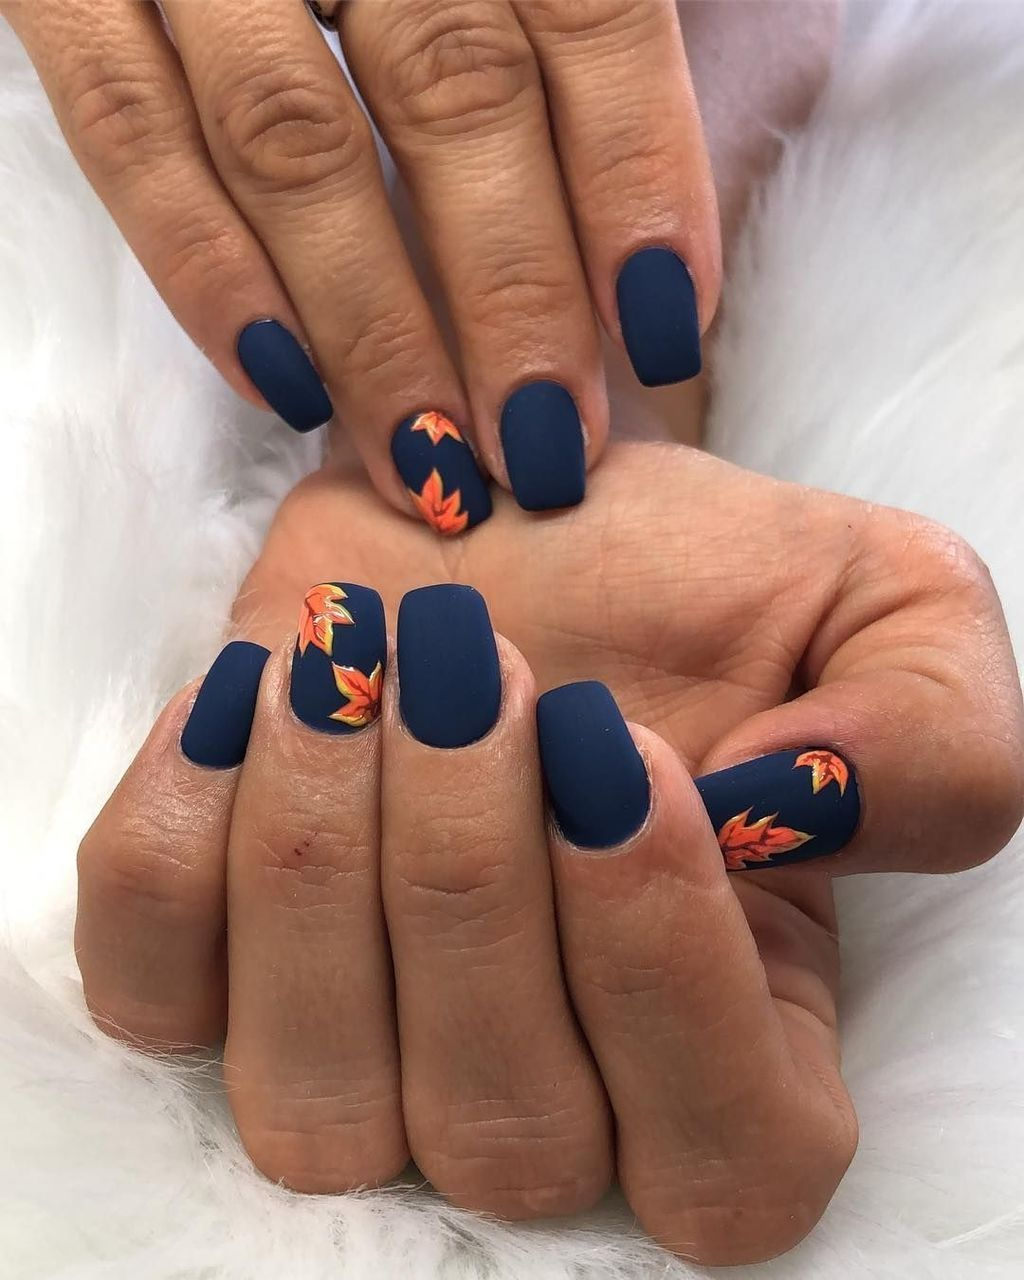 42 Outstanding Fall Nails Designs Ideas That Make You Want To Copy In 2020 With Images Fall Nail Art Designs Fall Nail Designs Autumn Nails